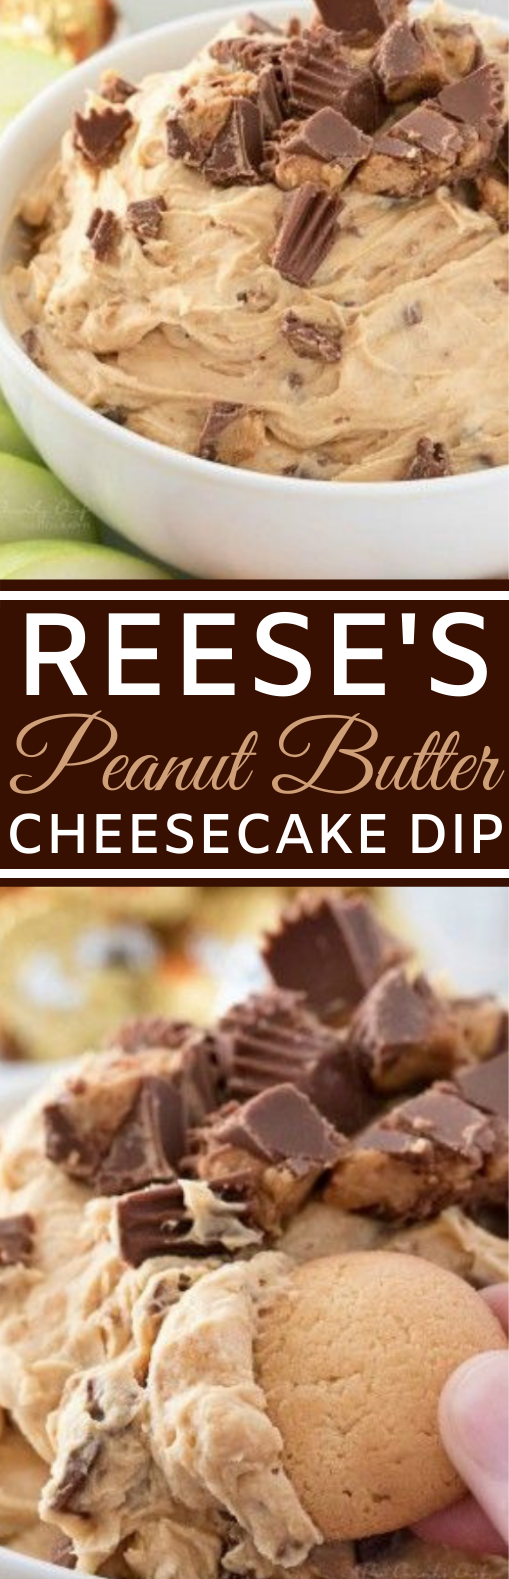 PEANUT BUTTER CHEESECAKE DIP #desserts #peanutbutter #cheesecake #easy #recipes